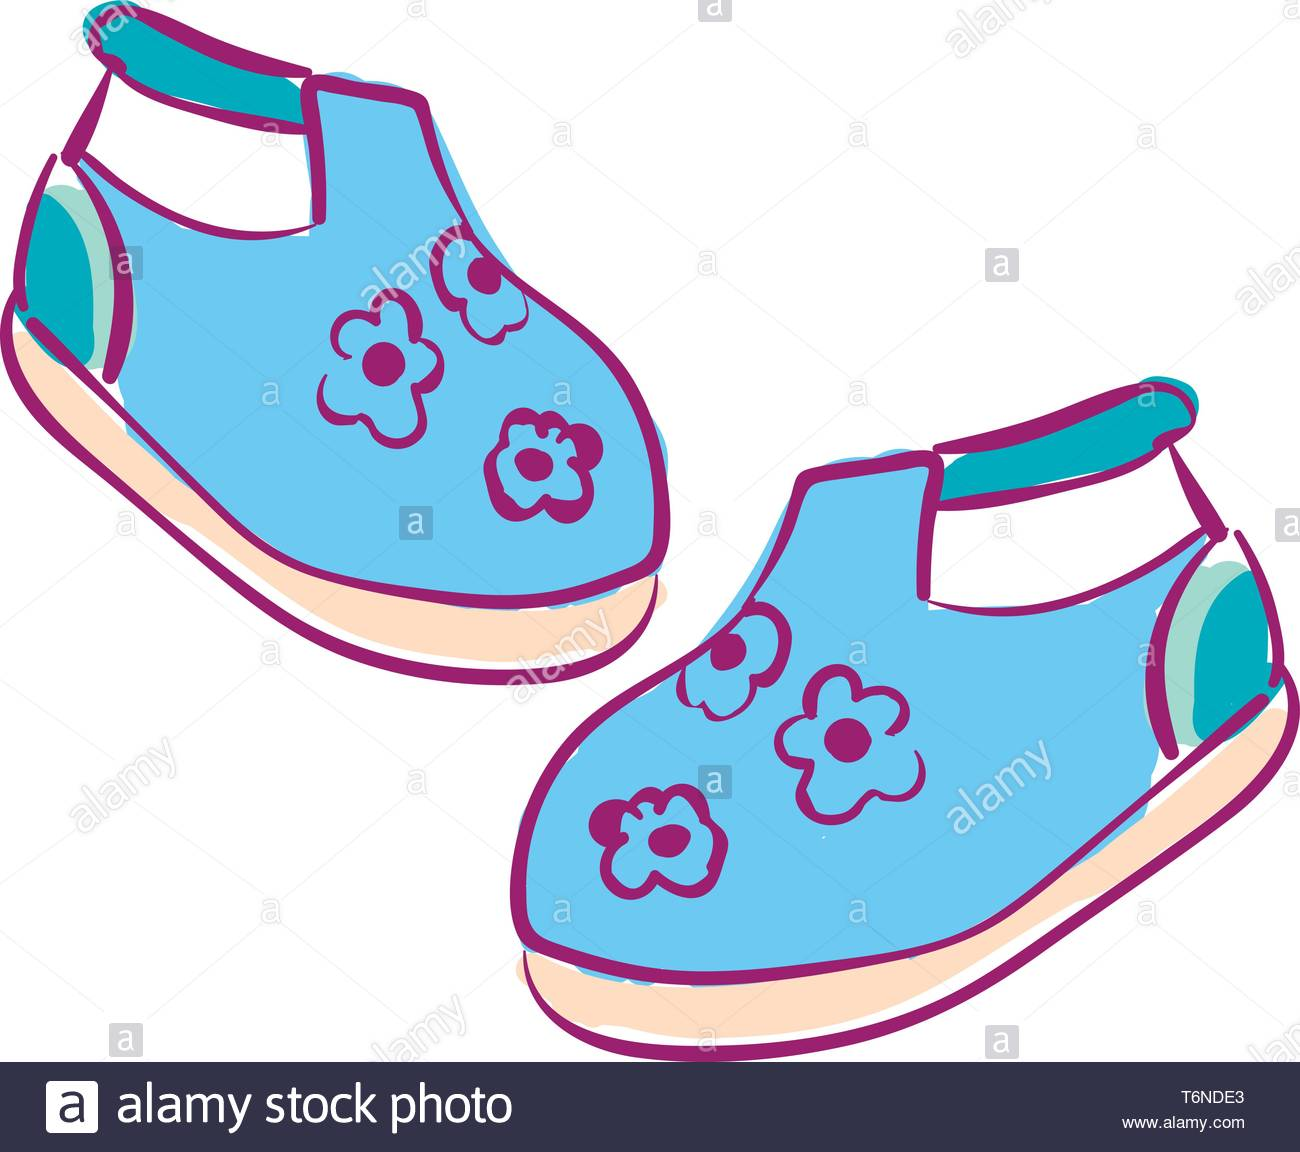 Clipart of a pair of baby's shoes blue in color with white.